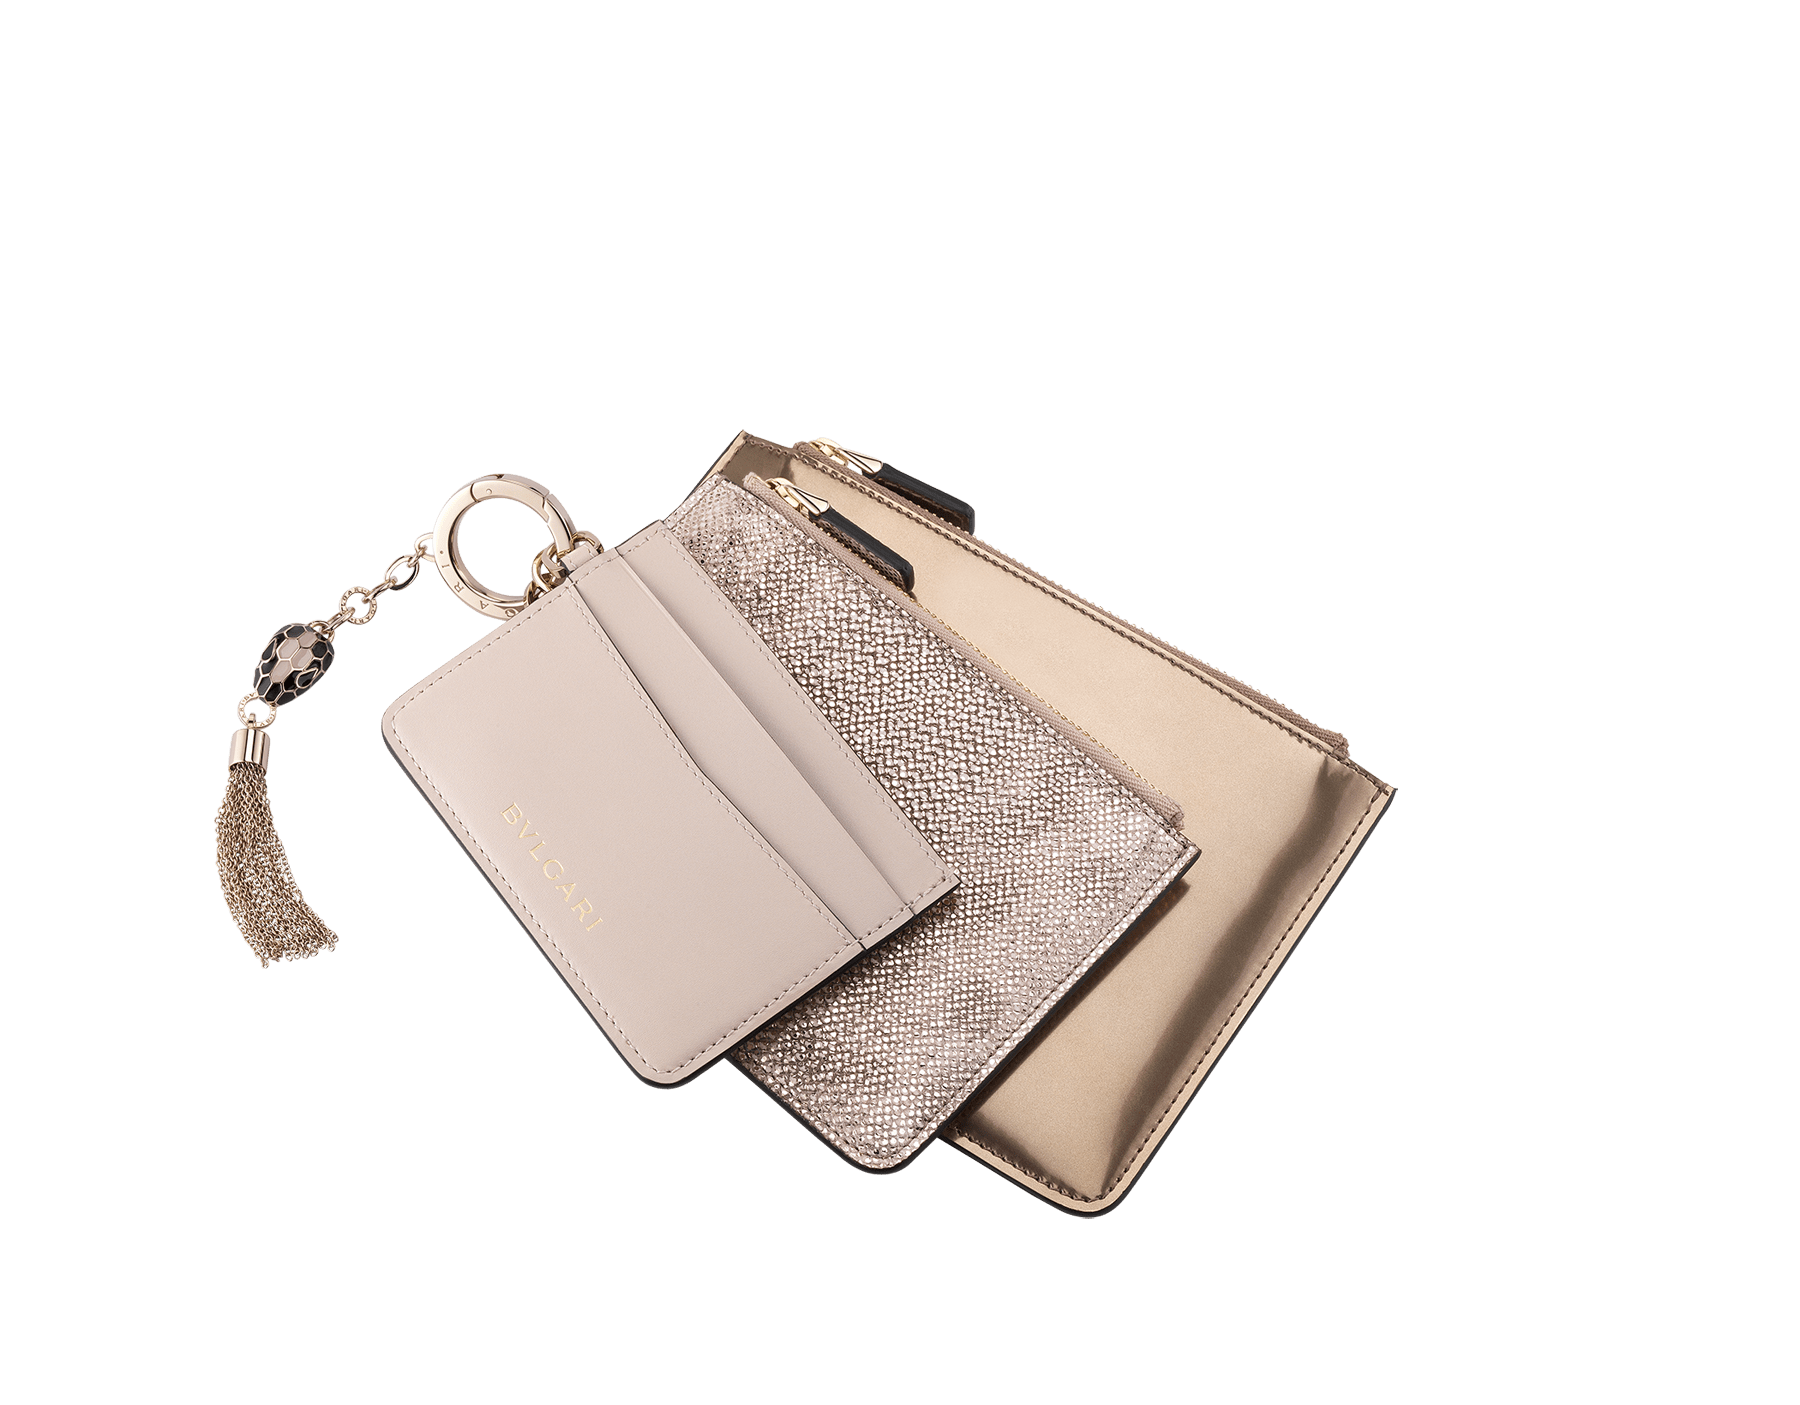 Serpenti Forever Trio in milky opal calf leather, antique bronze brushed metallic calf leather and milky opal metallic karung skin. Brass light gold plated keyring with Serpenti head charm in black and milky opal enamel, with black enamel eyes. SEA-TRIO image 1